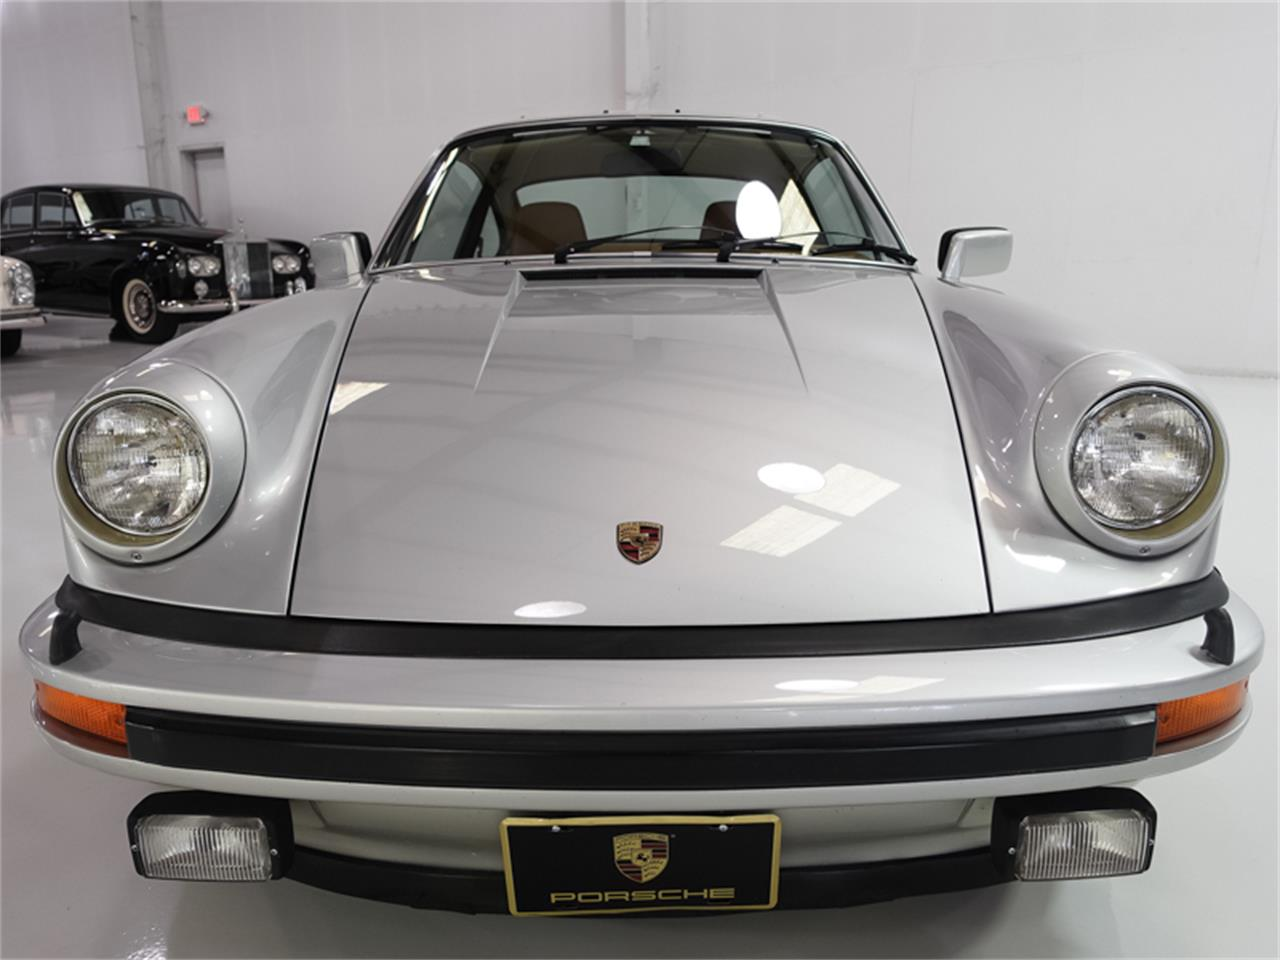 Large Picture of '76 Porsche 930 Turbo located in Missouri - $229,900.00 Offered by Daniel Schmitt & Co. - FXKC